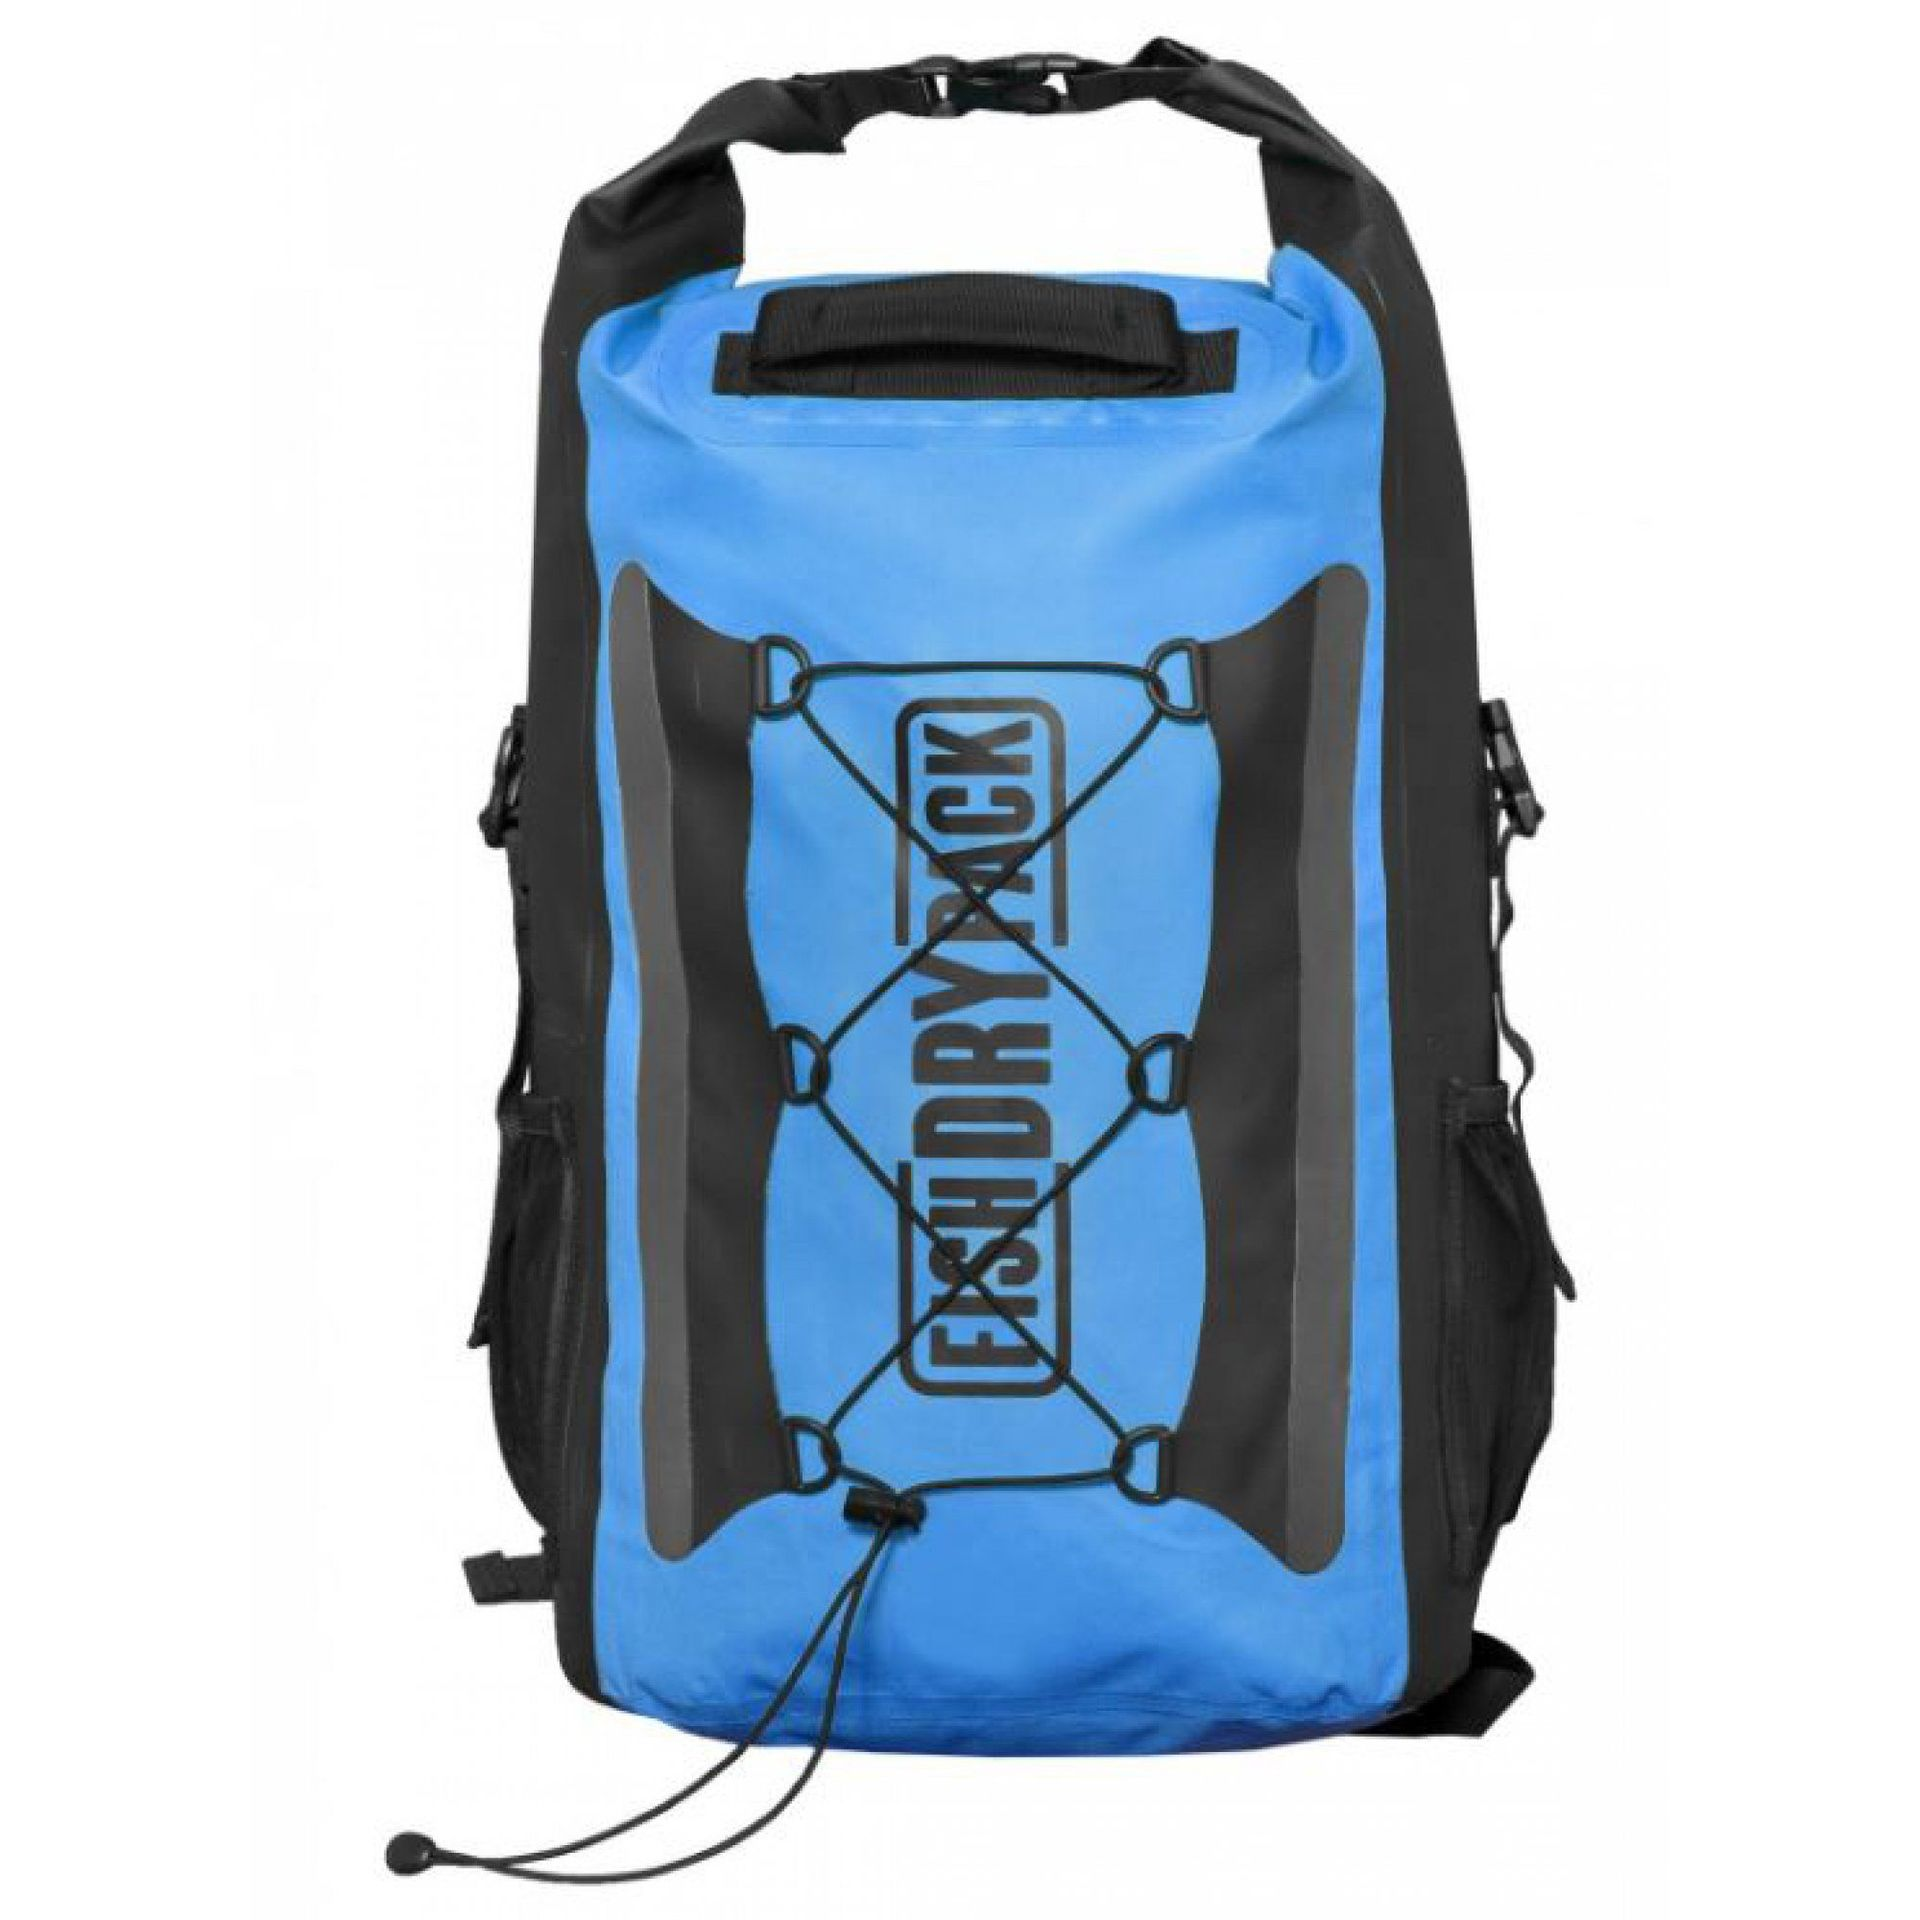 PLECAK FISH SKATEBOARDS FISH DRY PACK EXPLORER 20L BLUE 2